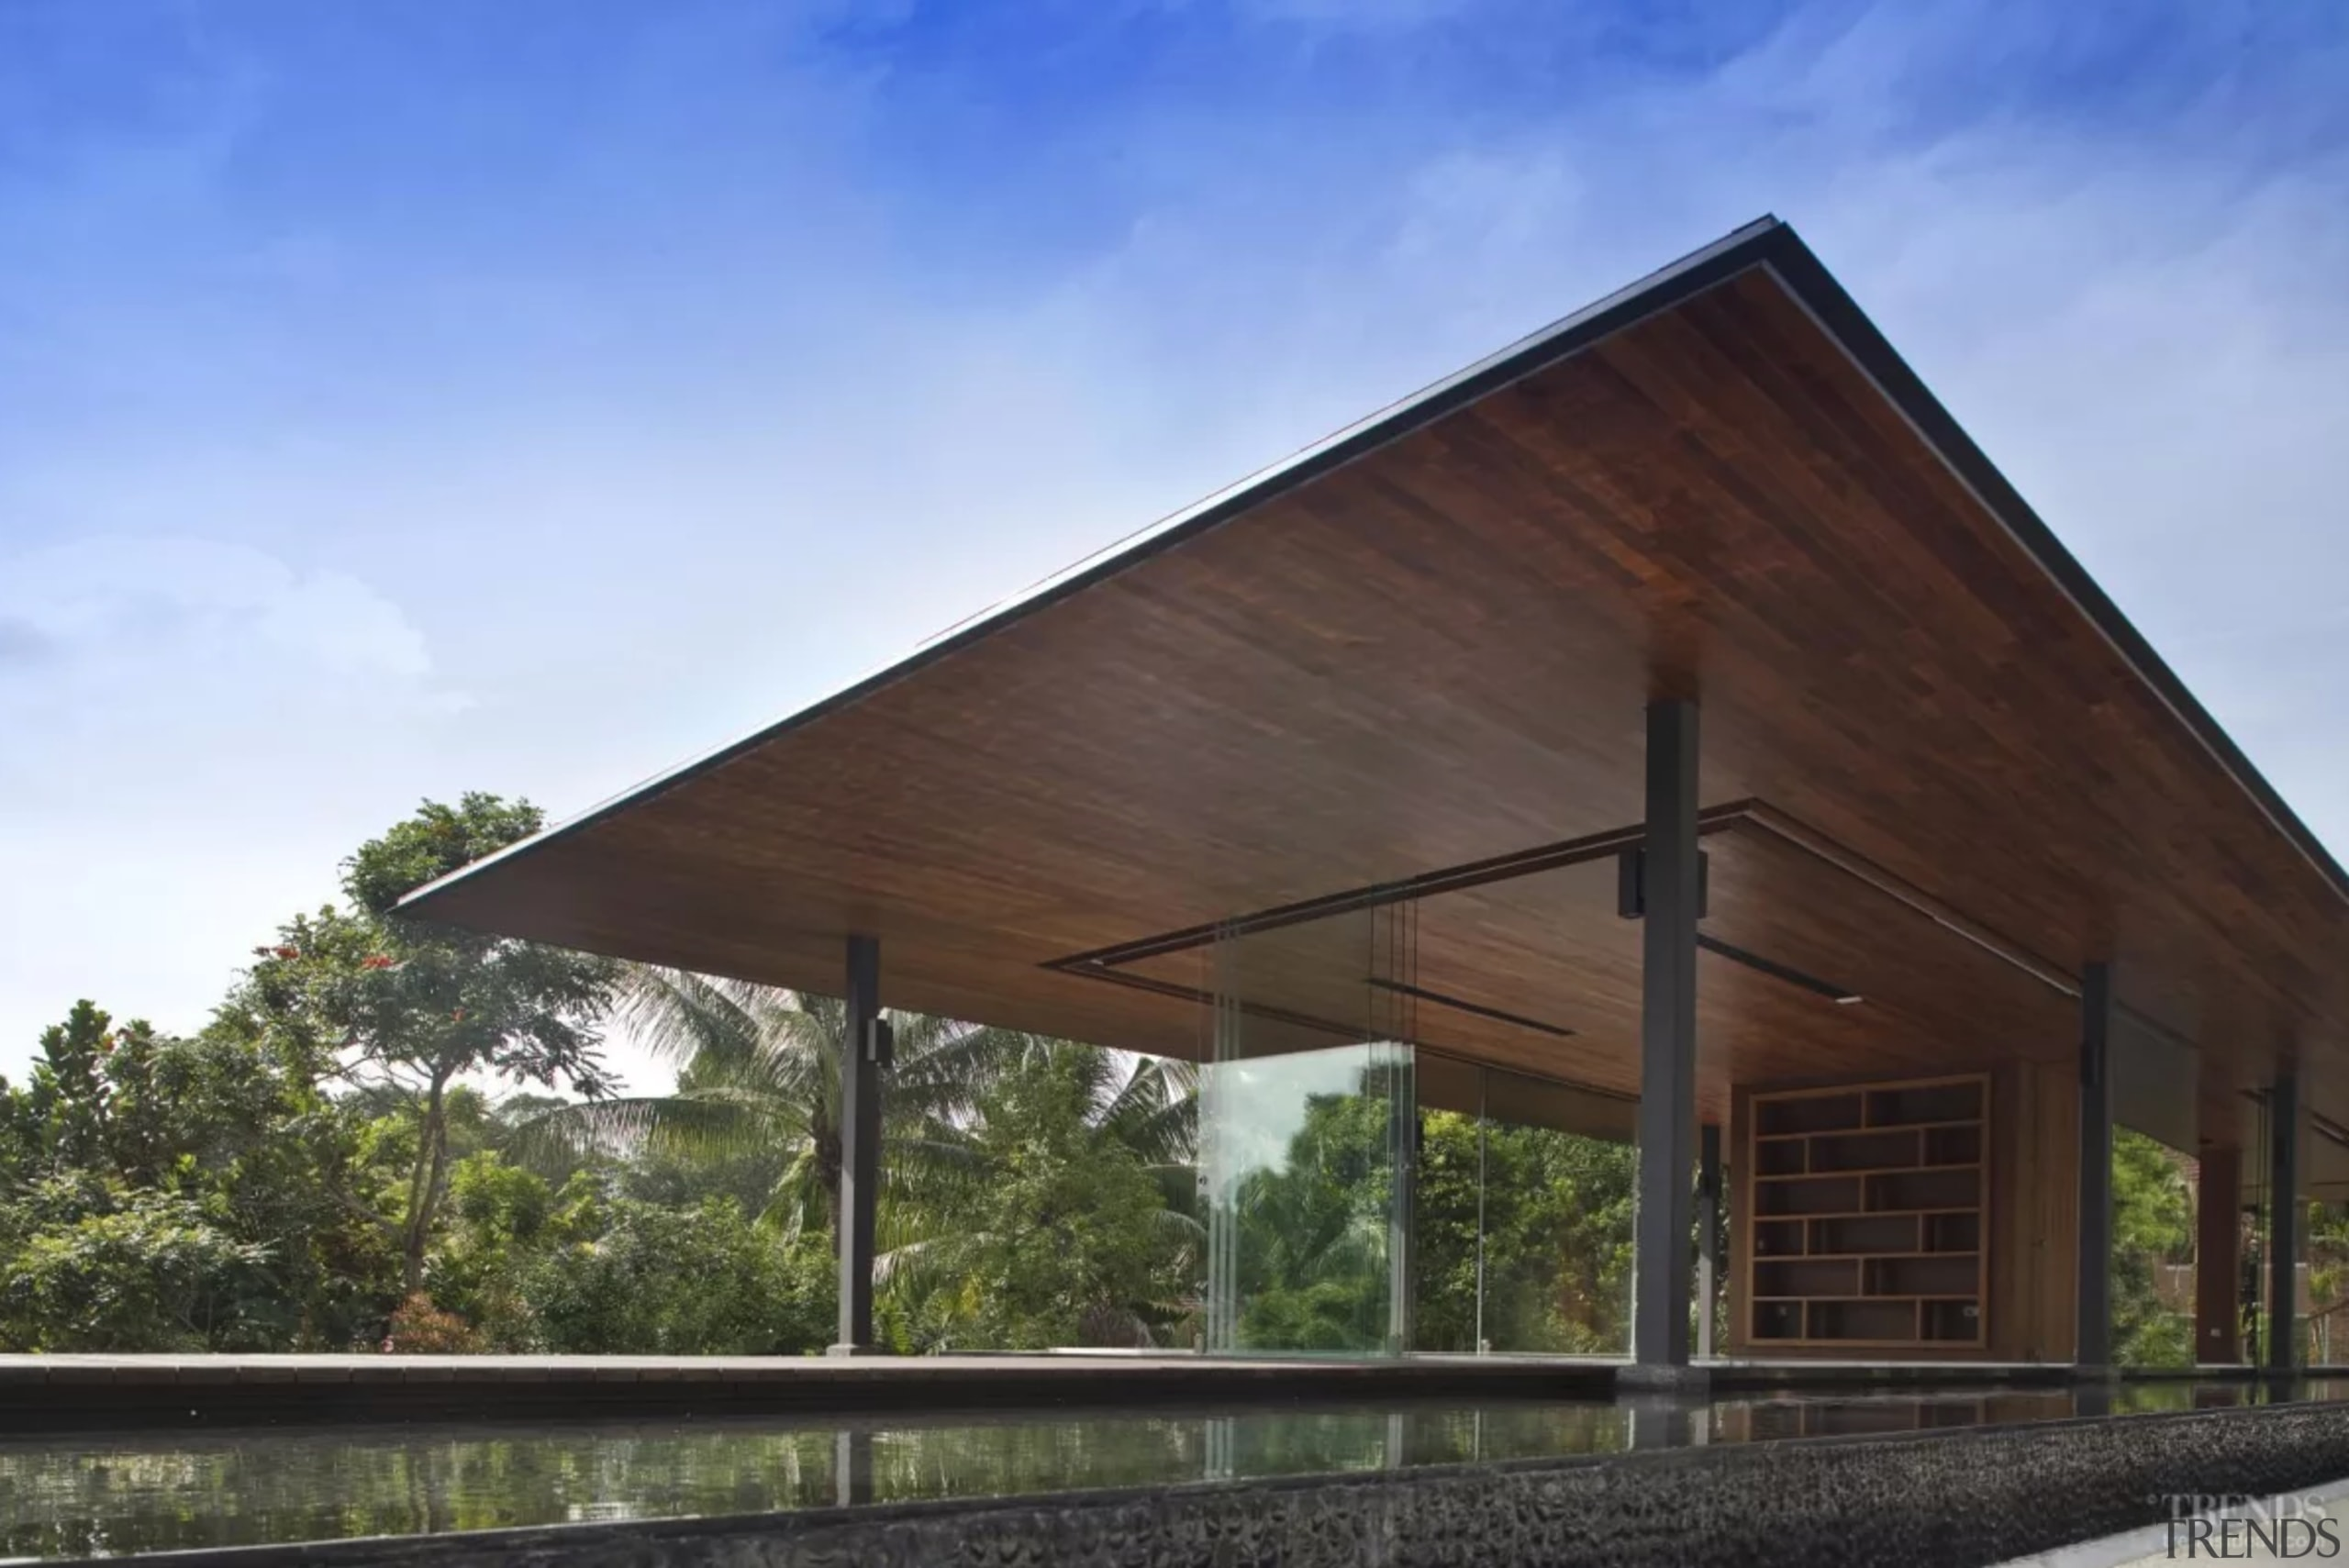 Water surrounds all sides of this living pavilion architecture, barn, building, facade, farmhouse, home, house, property, real estate, roof, rural area, shade, sky, tree, teal, black